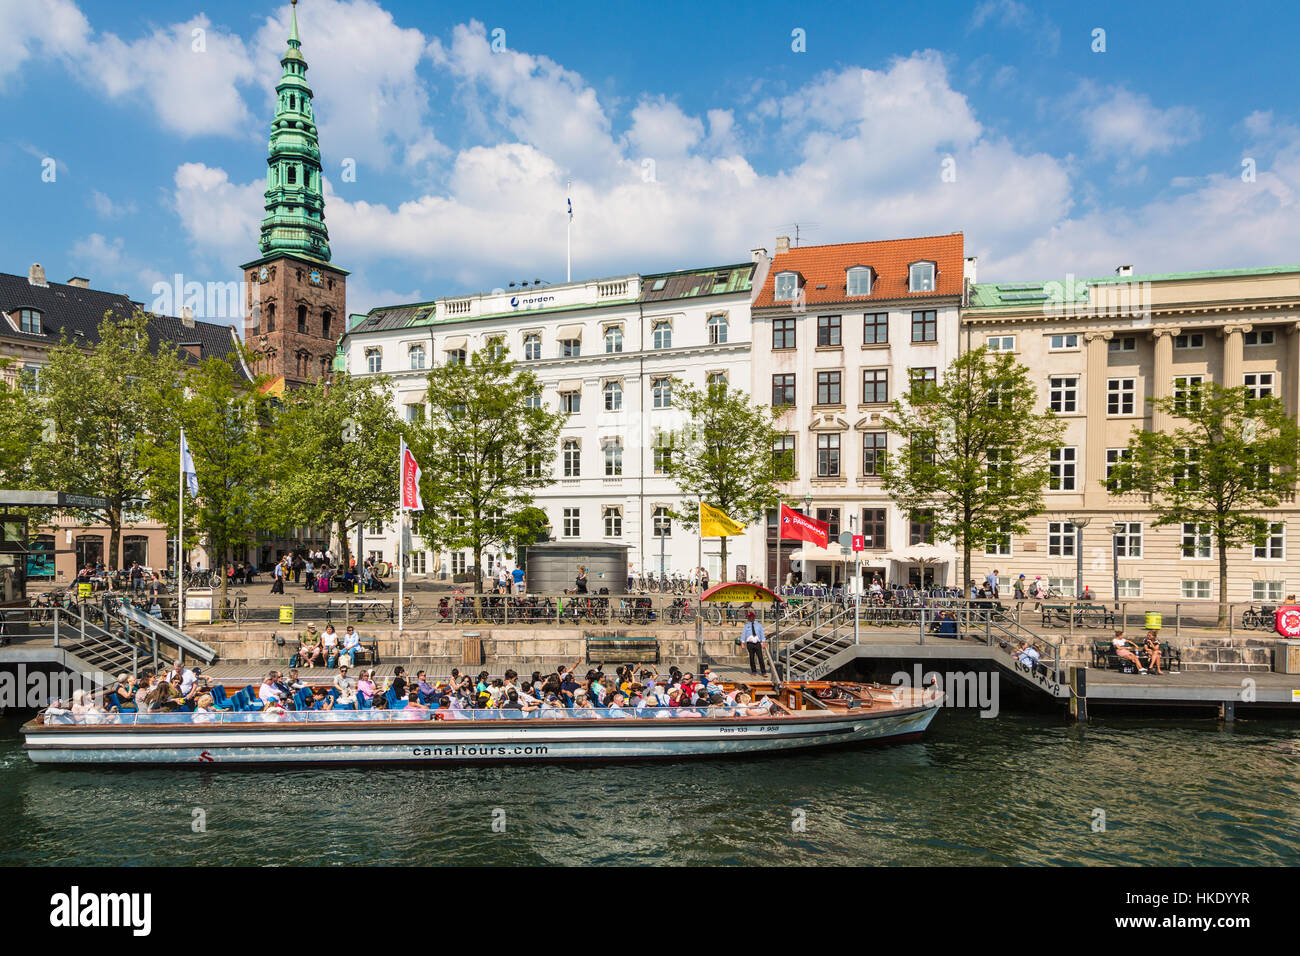 COPENHAGEN, DENMARK - MAY 24, 2016: Tourists enjoy the traditional architecture from a tourist boat along the canals Stock Photo